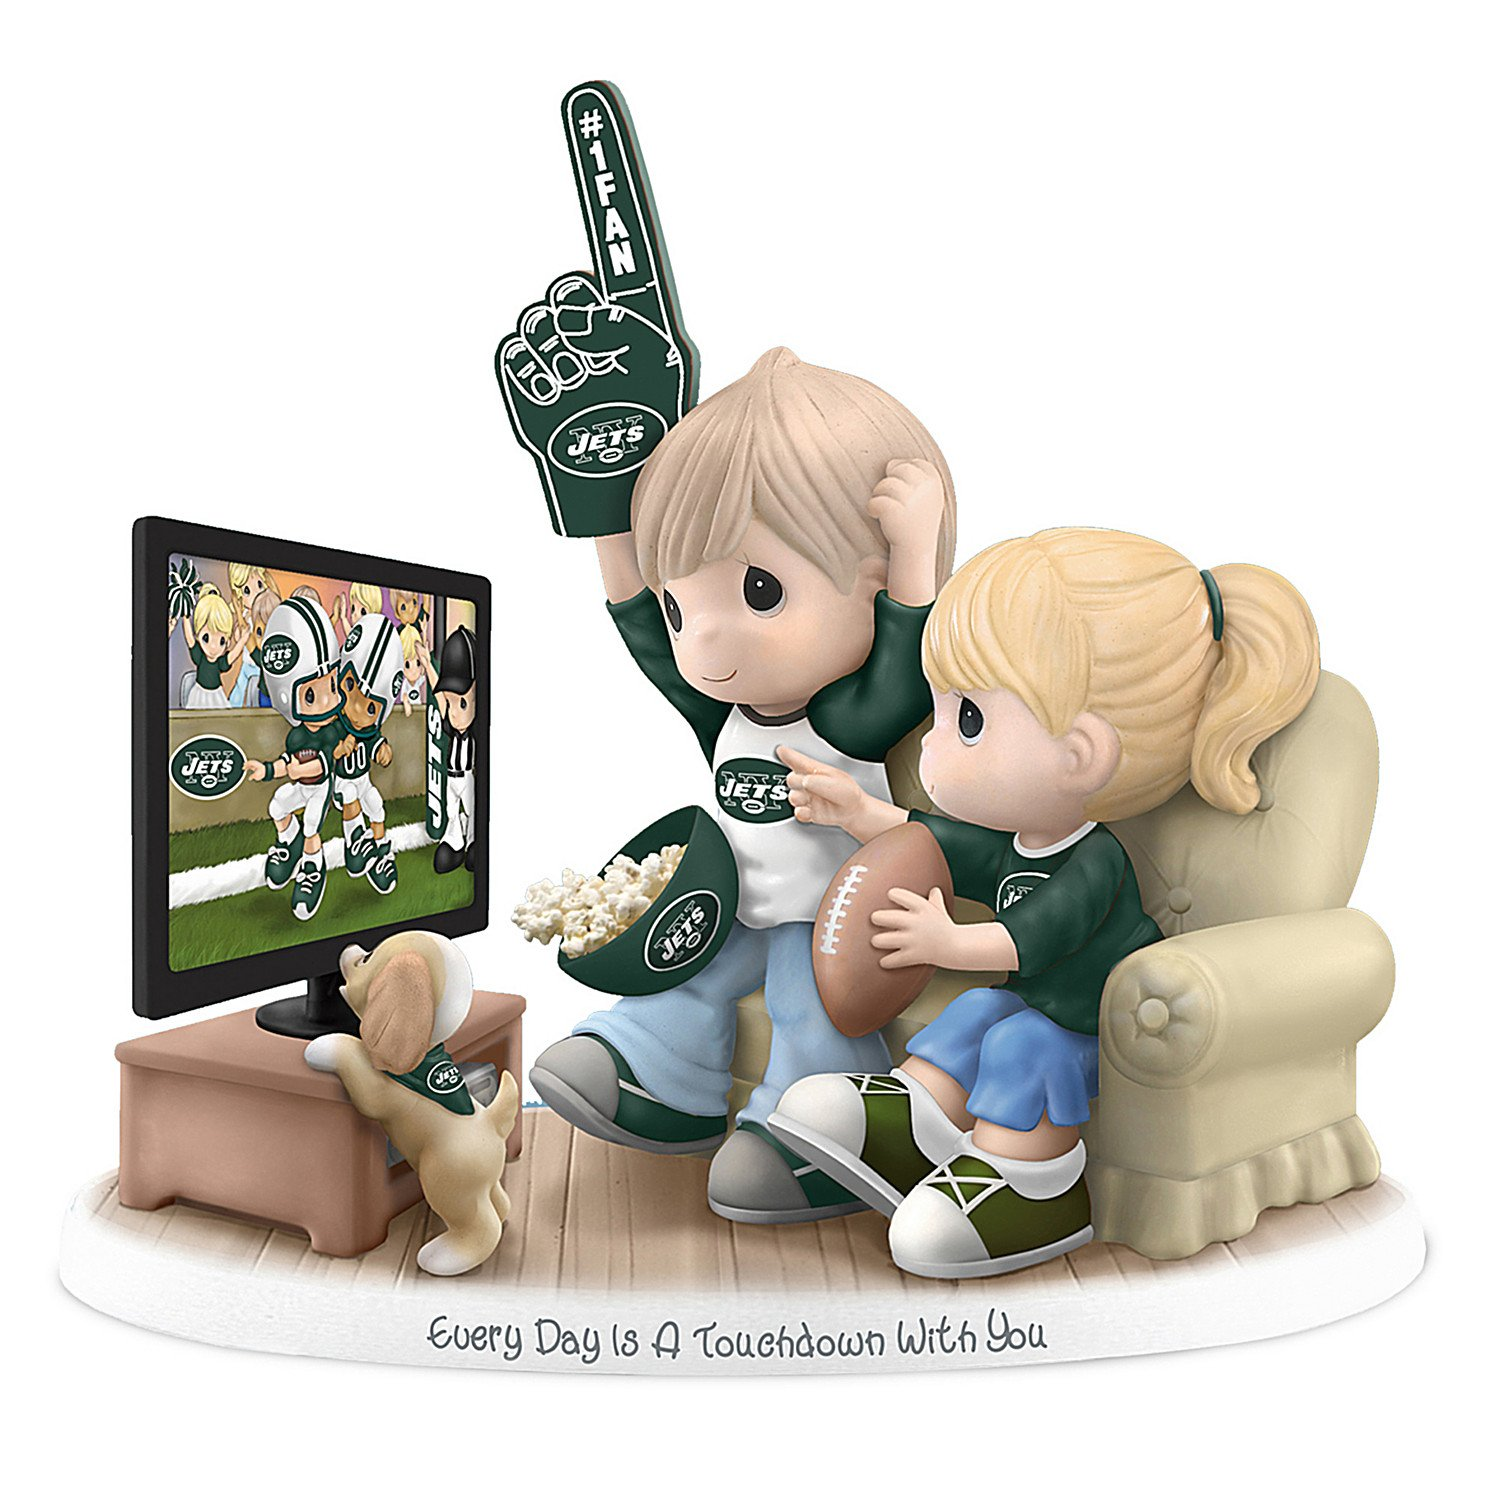 Figurine: Precious Moments Every Day Is A Touchdown With You Jets Figurine by The Hamilton Collection